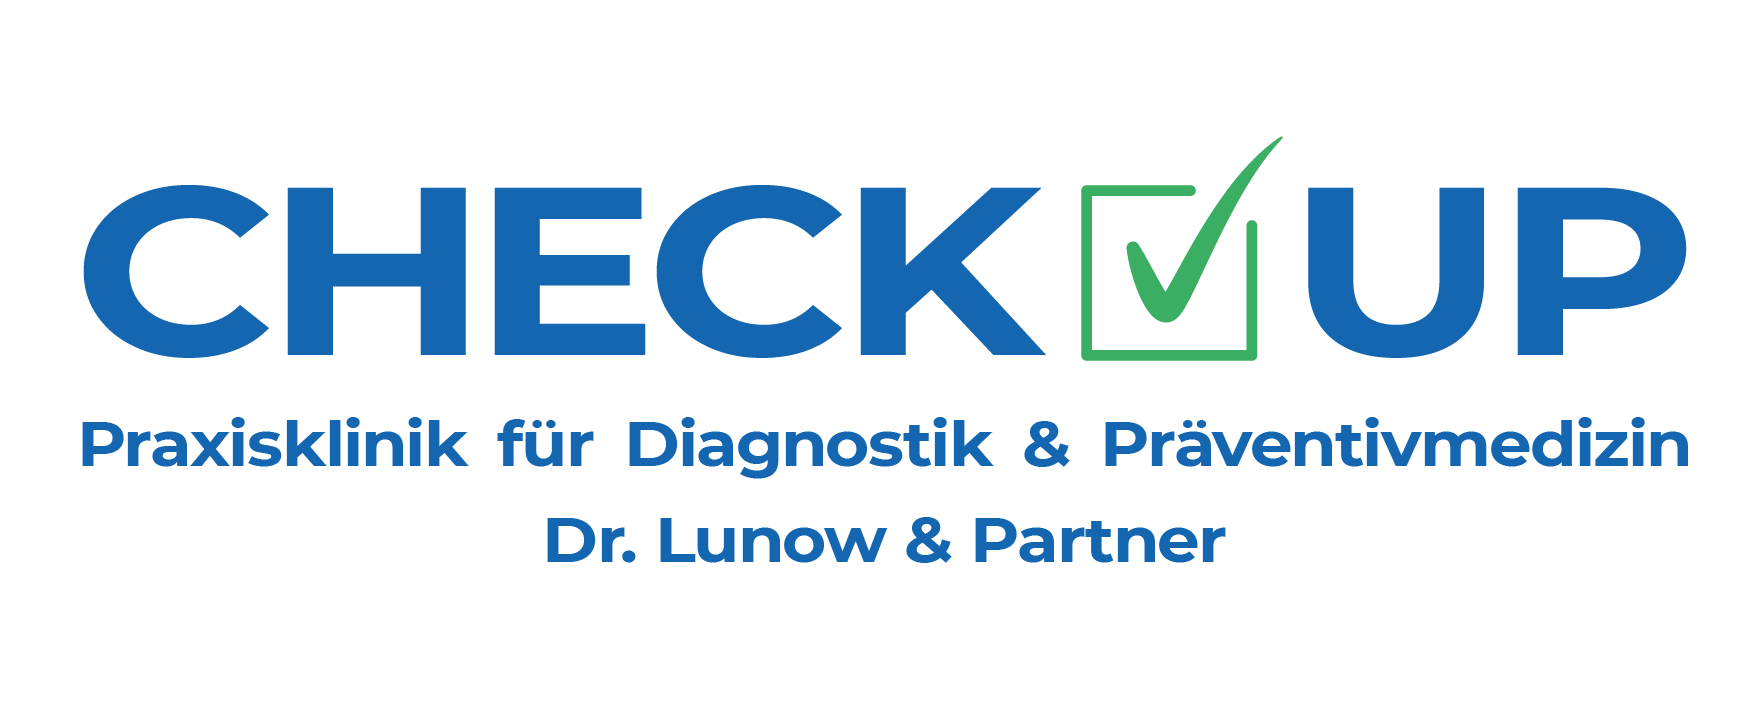 Complete healthcheck at the medical centre for diagnostics in cologne